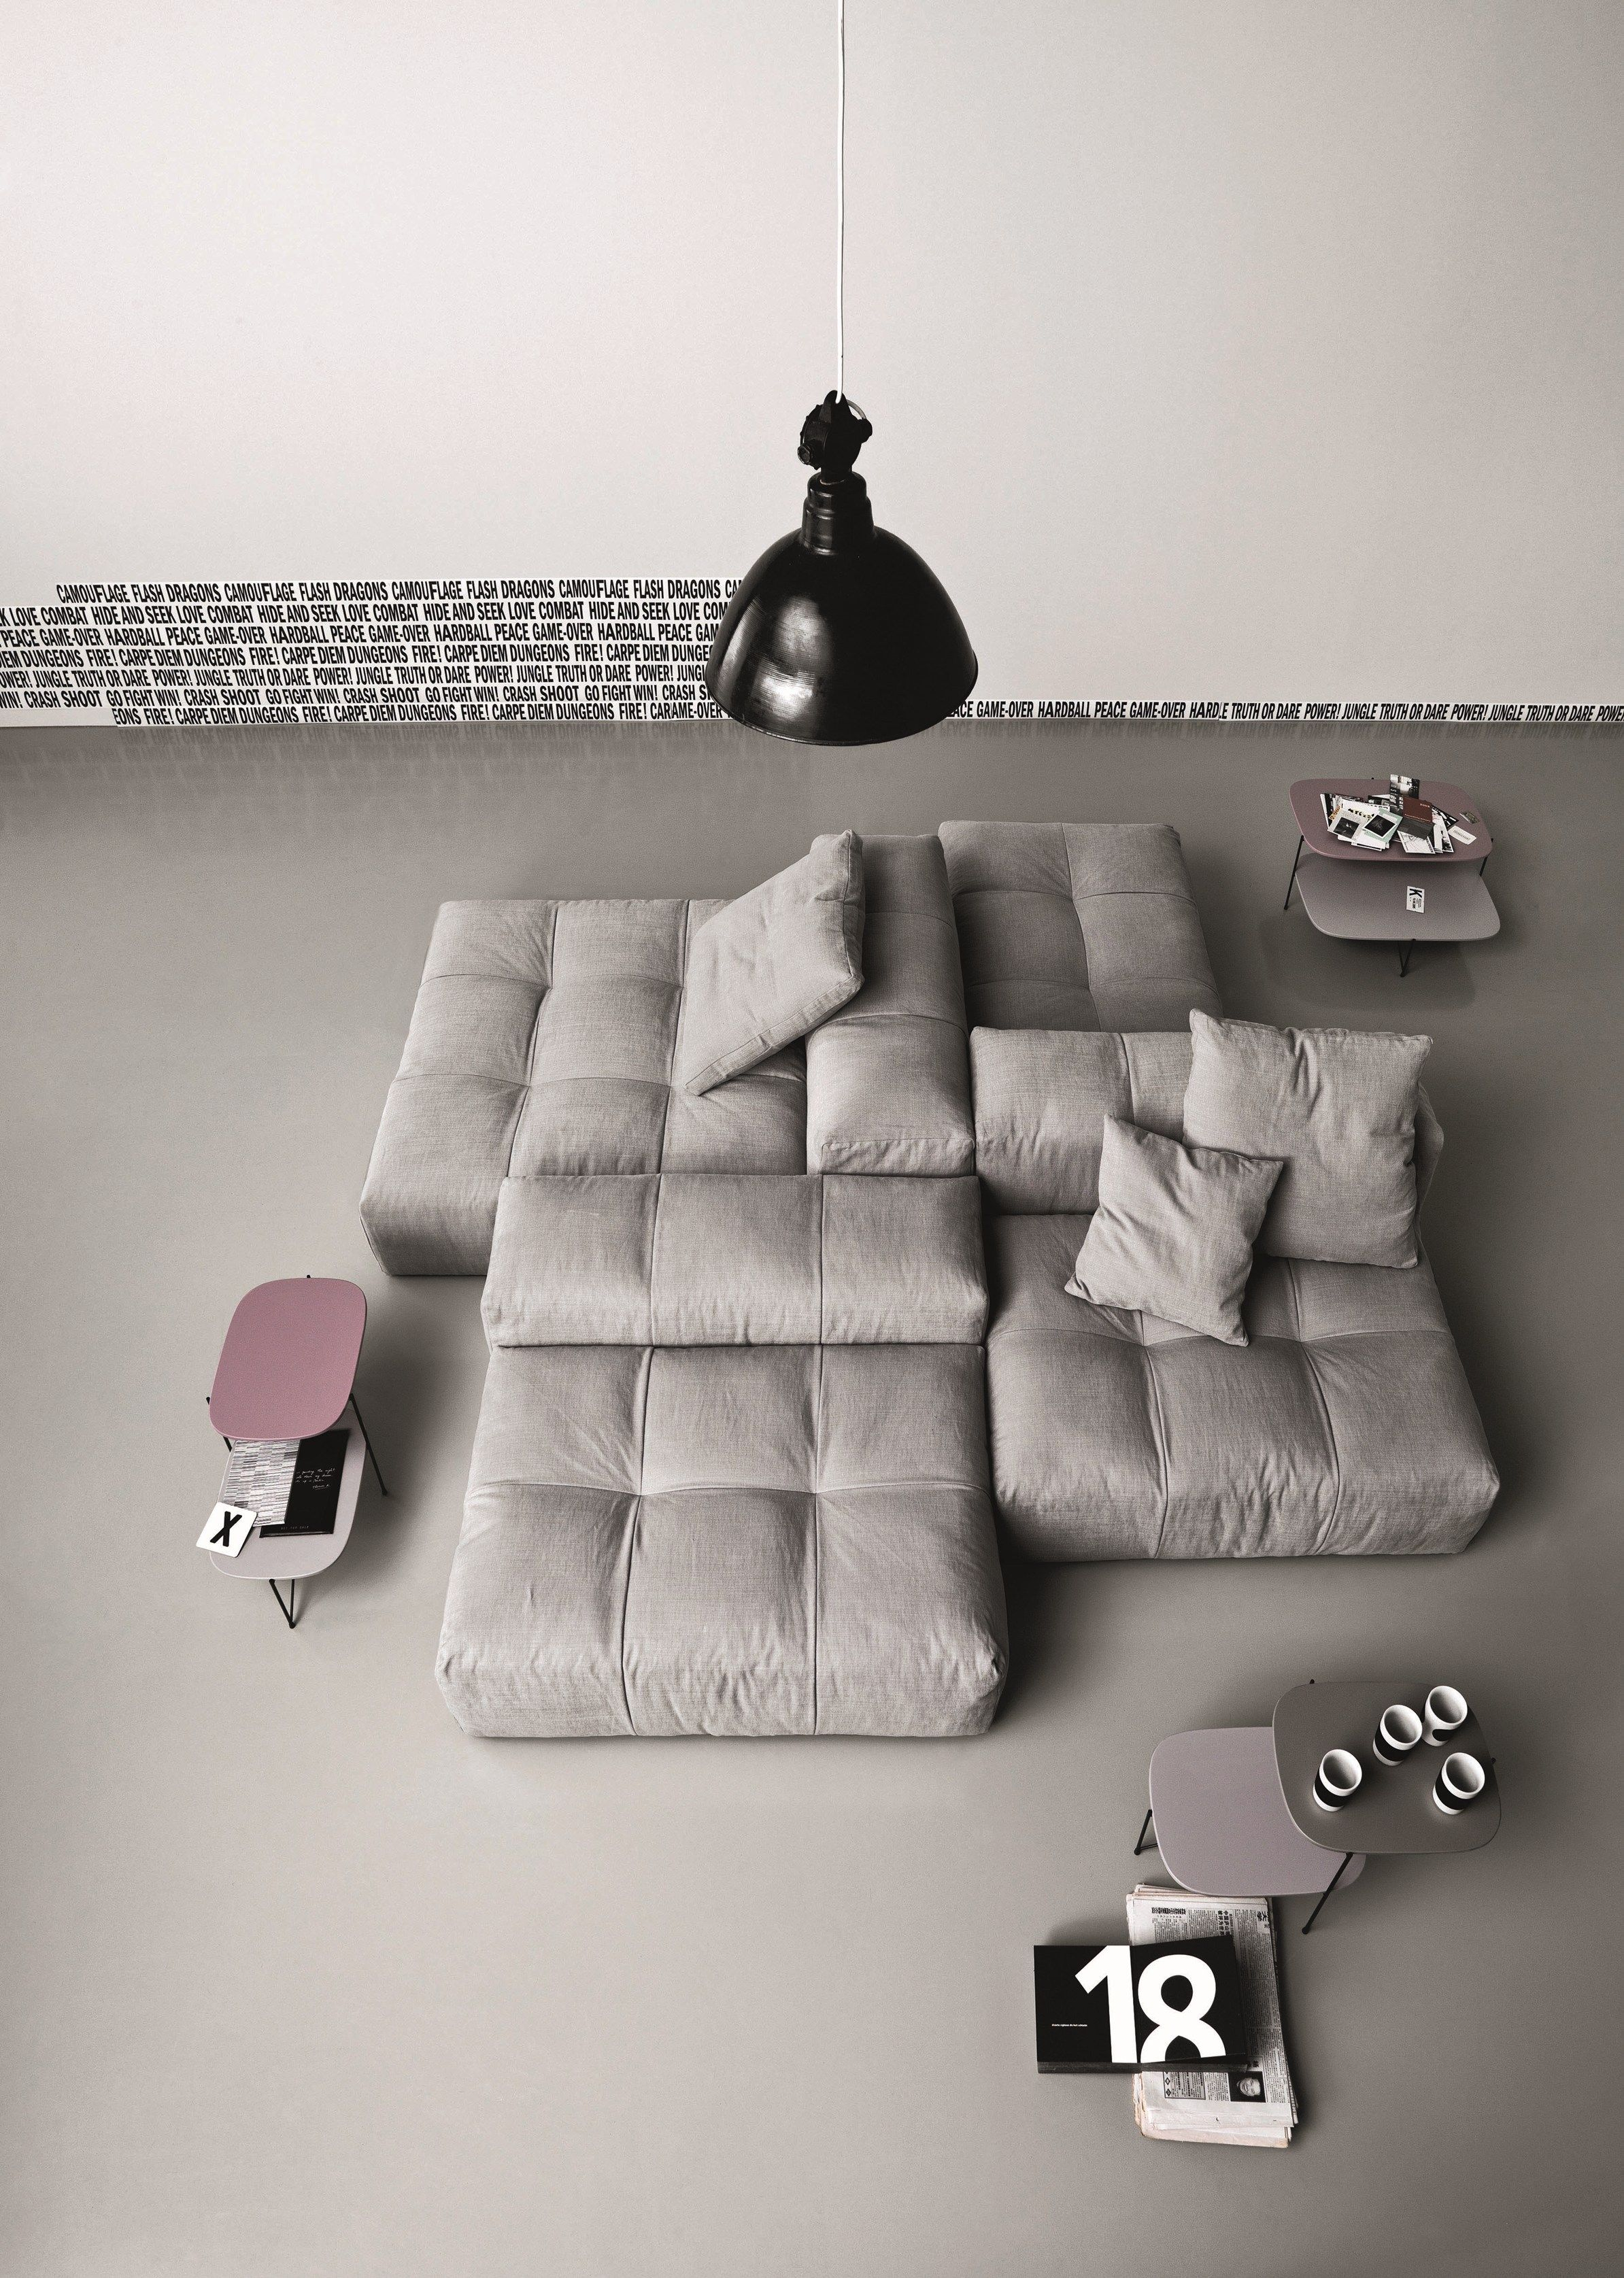 1000 images about sofas on pinterest sofa sofa modular sofa and canapes bedroomengaging modular sofa system live